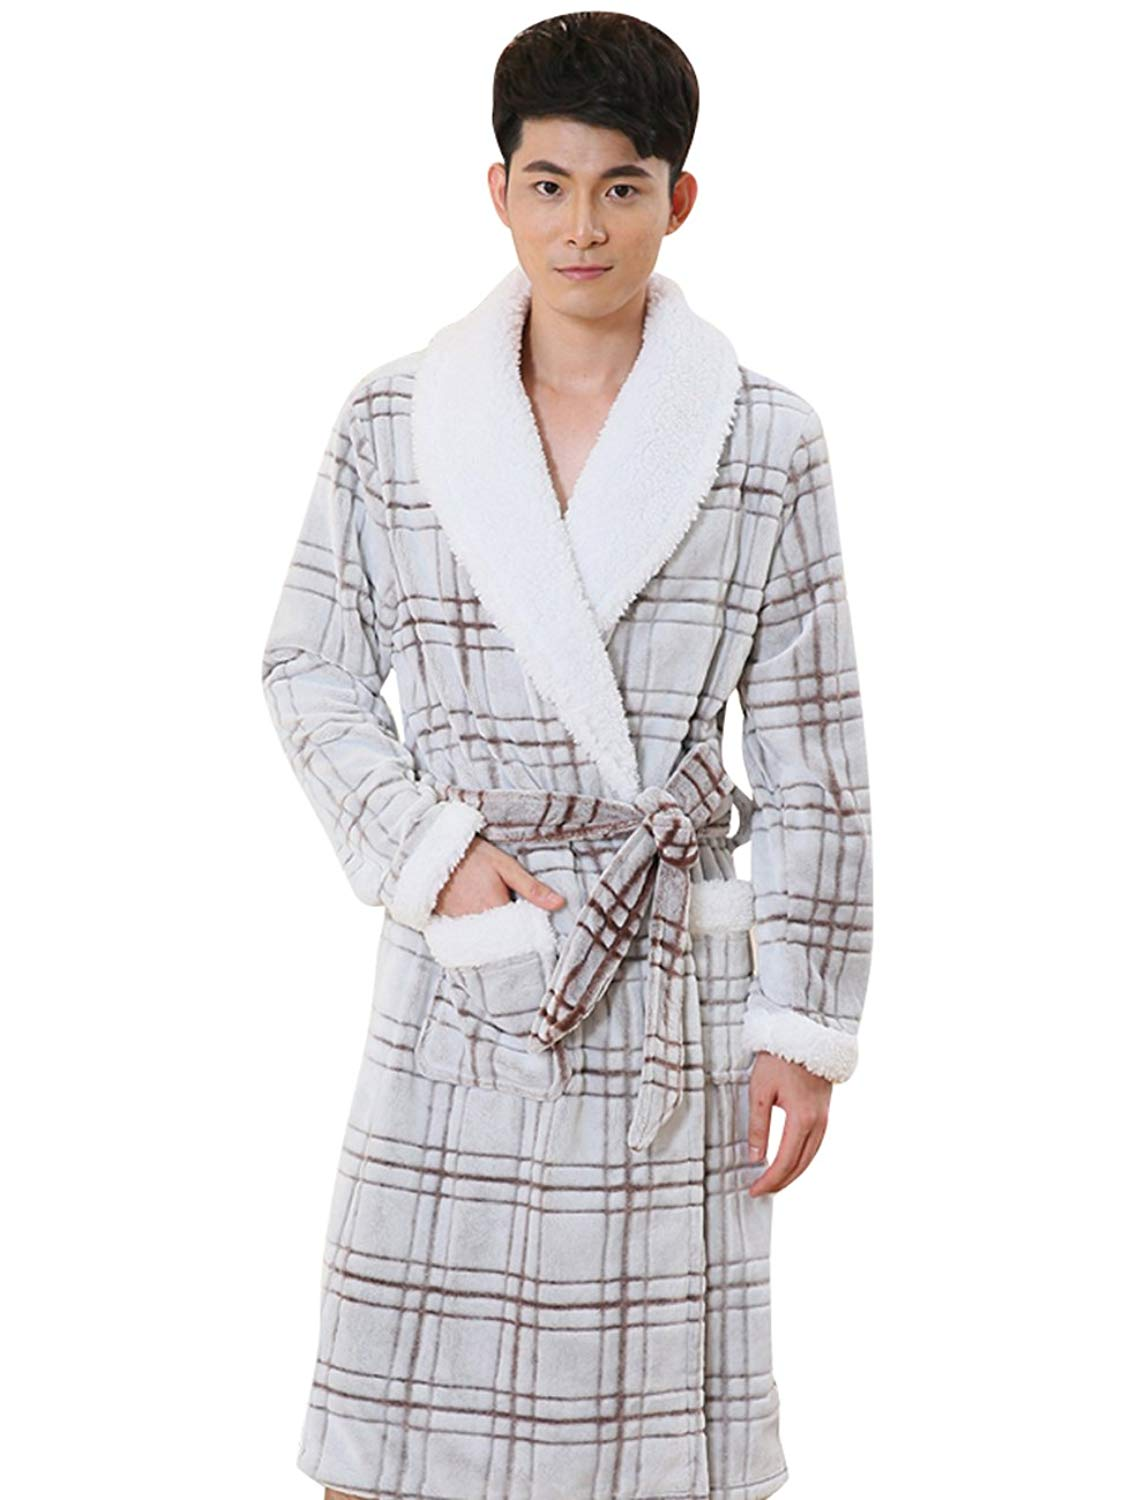 eb1a6f4a16 Get Quotations · Nueking Mens Grids Warm Comfort Fleece Flannel Bathrobe  Robes Pajamas